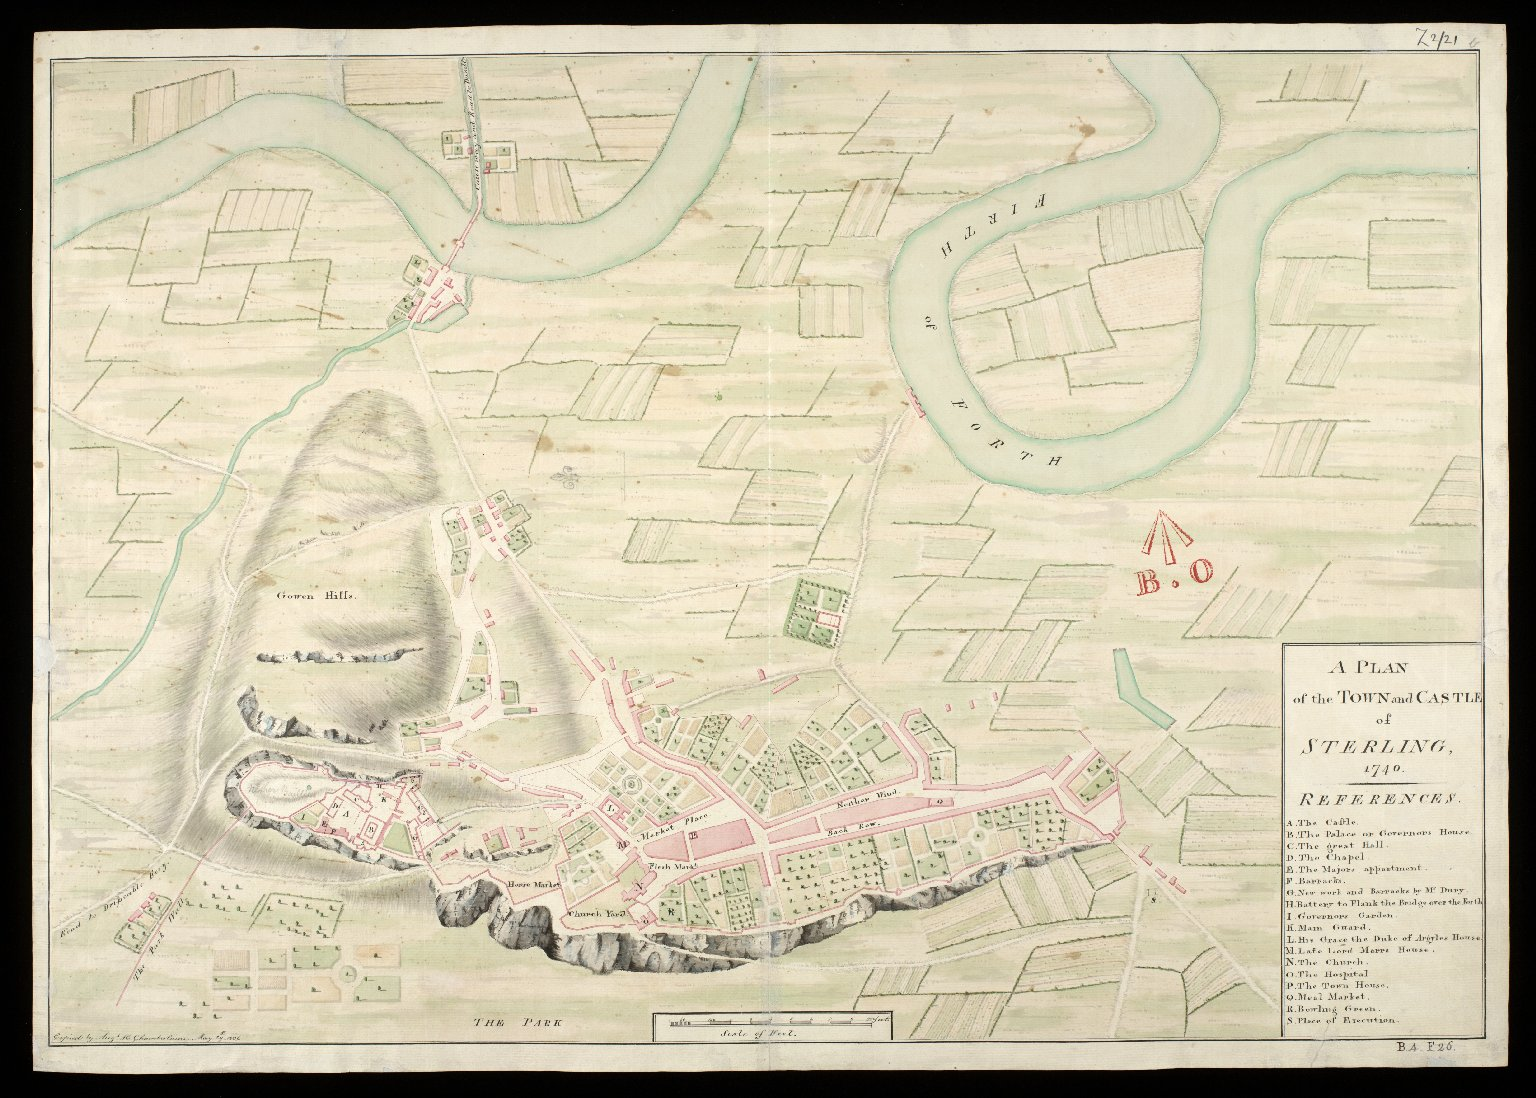 A Plan of the town and castle of Sterling [i.e. Stirling] 1740 [1 of 1]